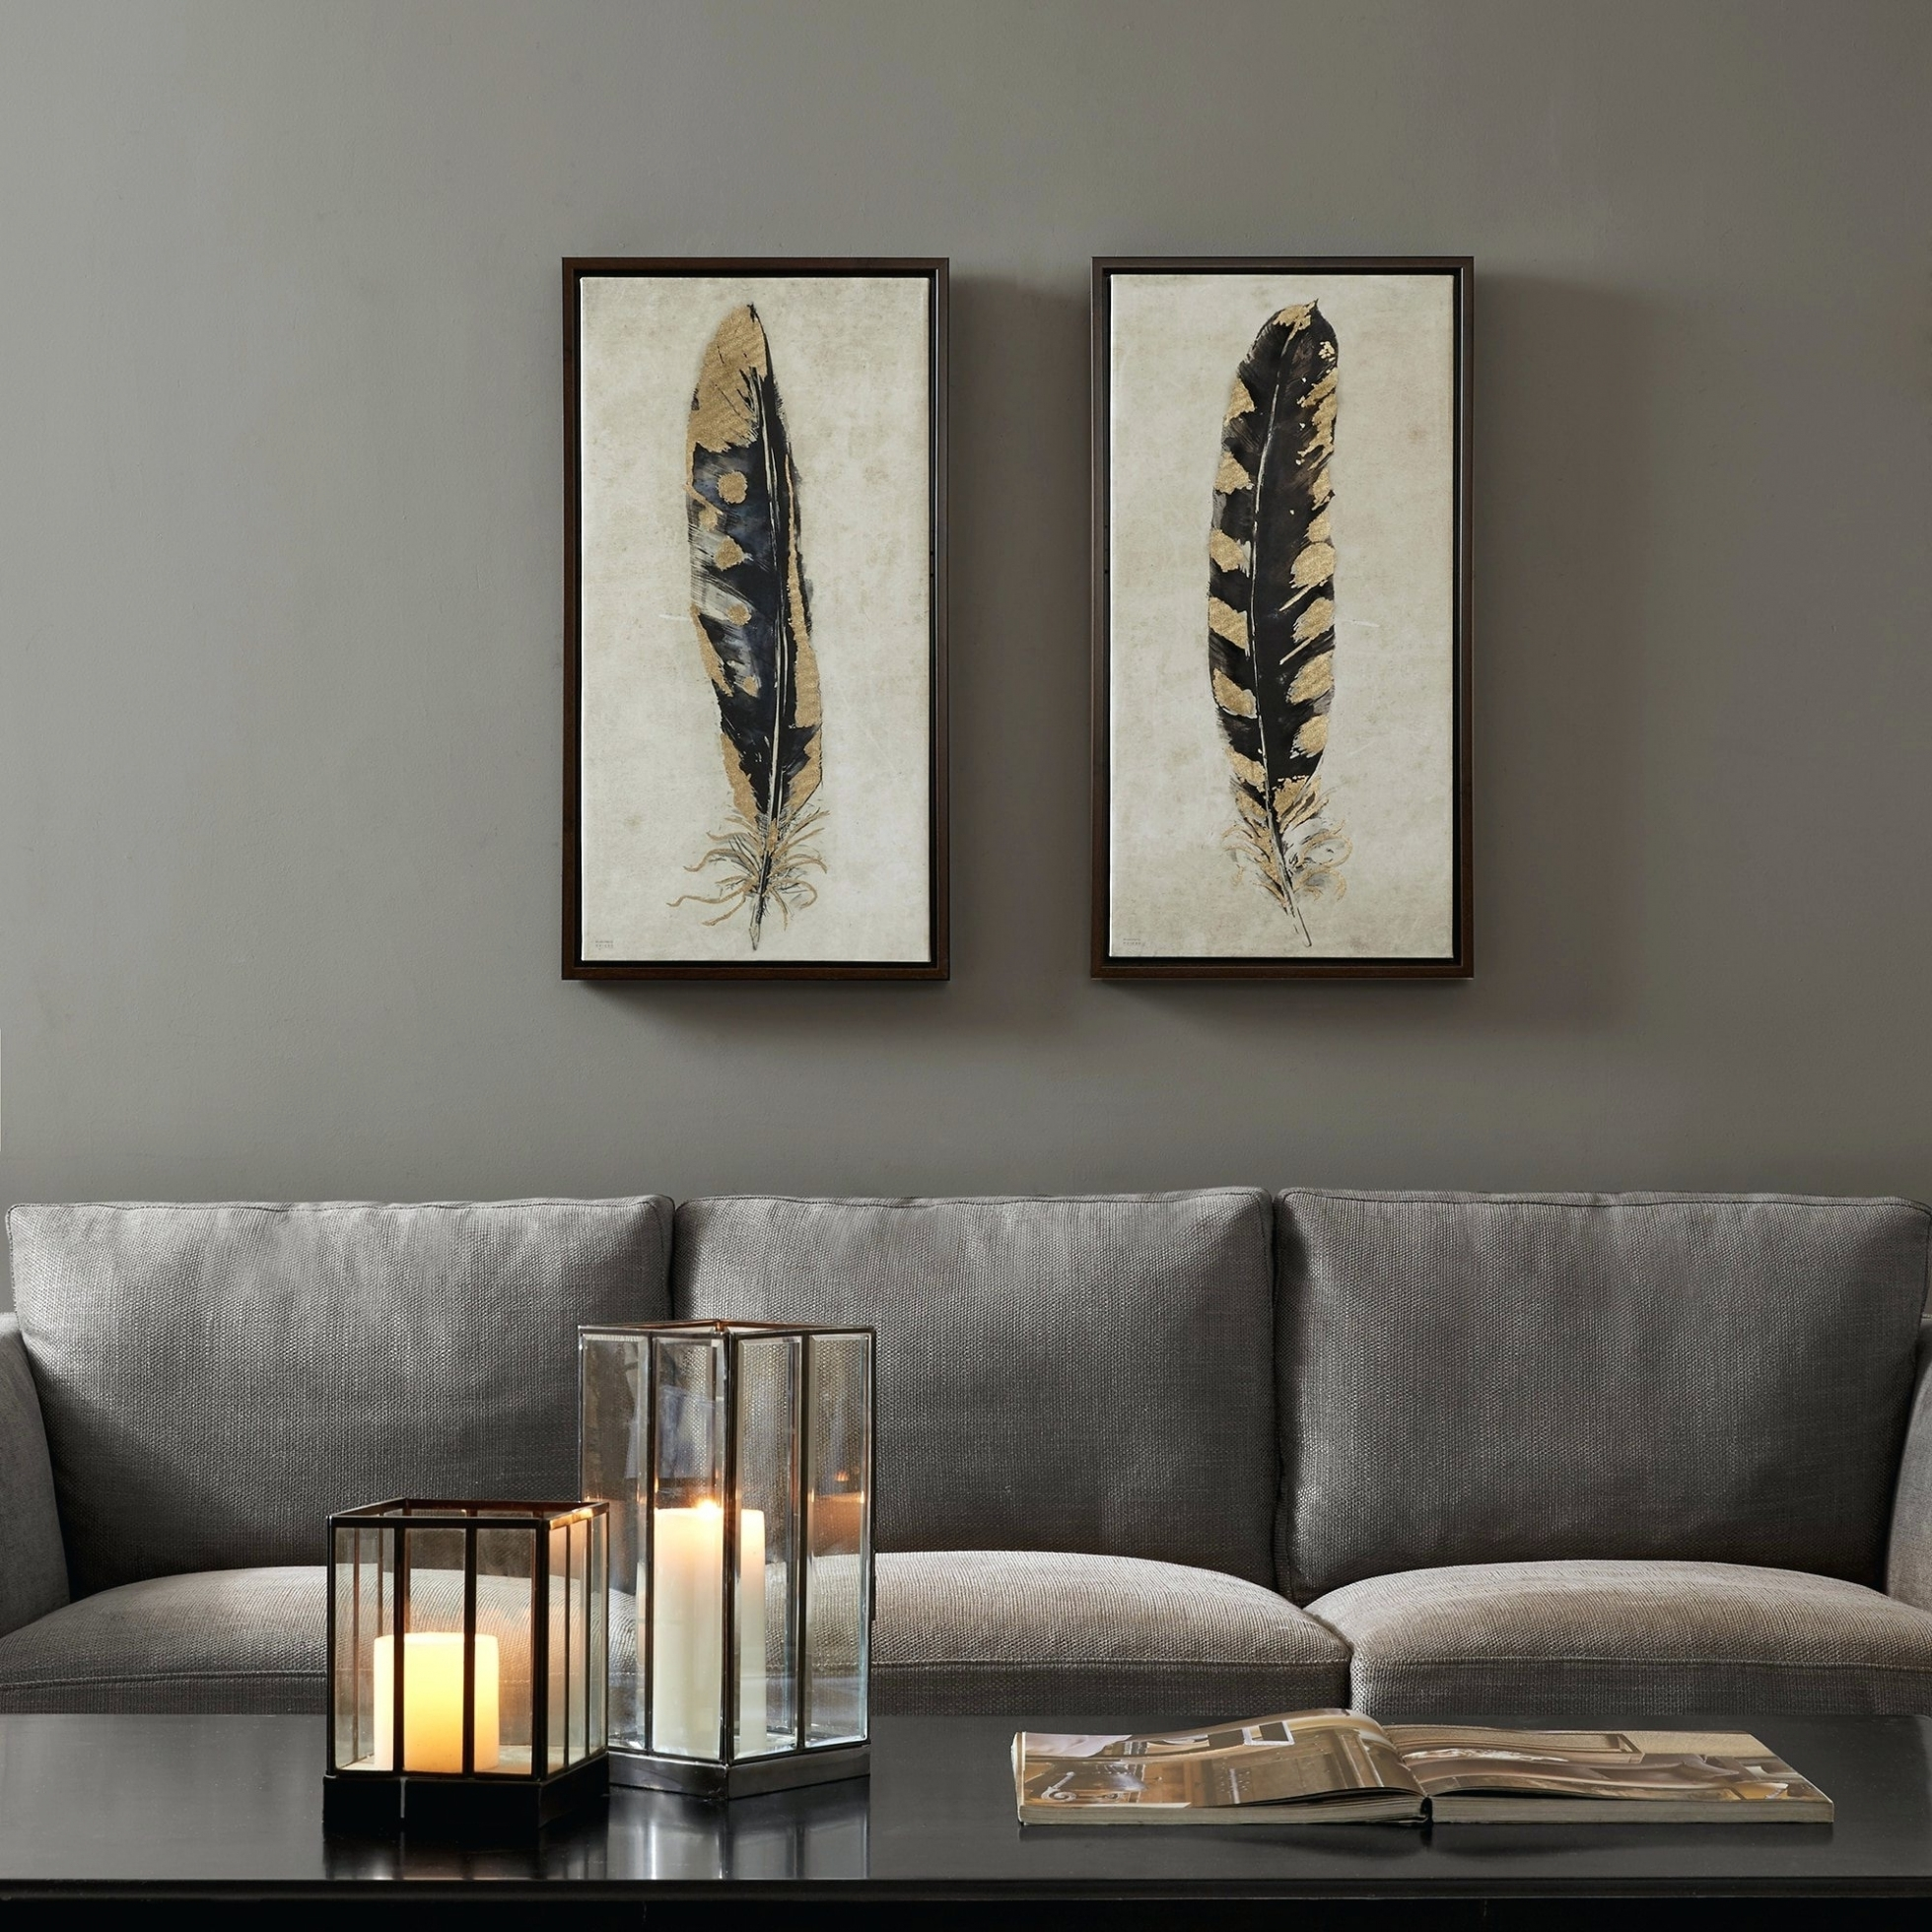 Inspiration: Best 15 Of Overstock Abstract Wall Art With Wall Art With Regard To Recent Overstock Wall Art (View 9 of 20)